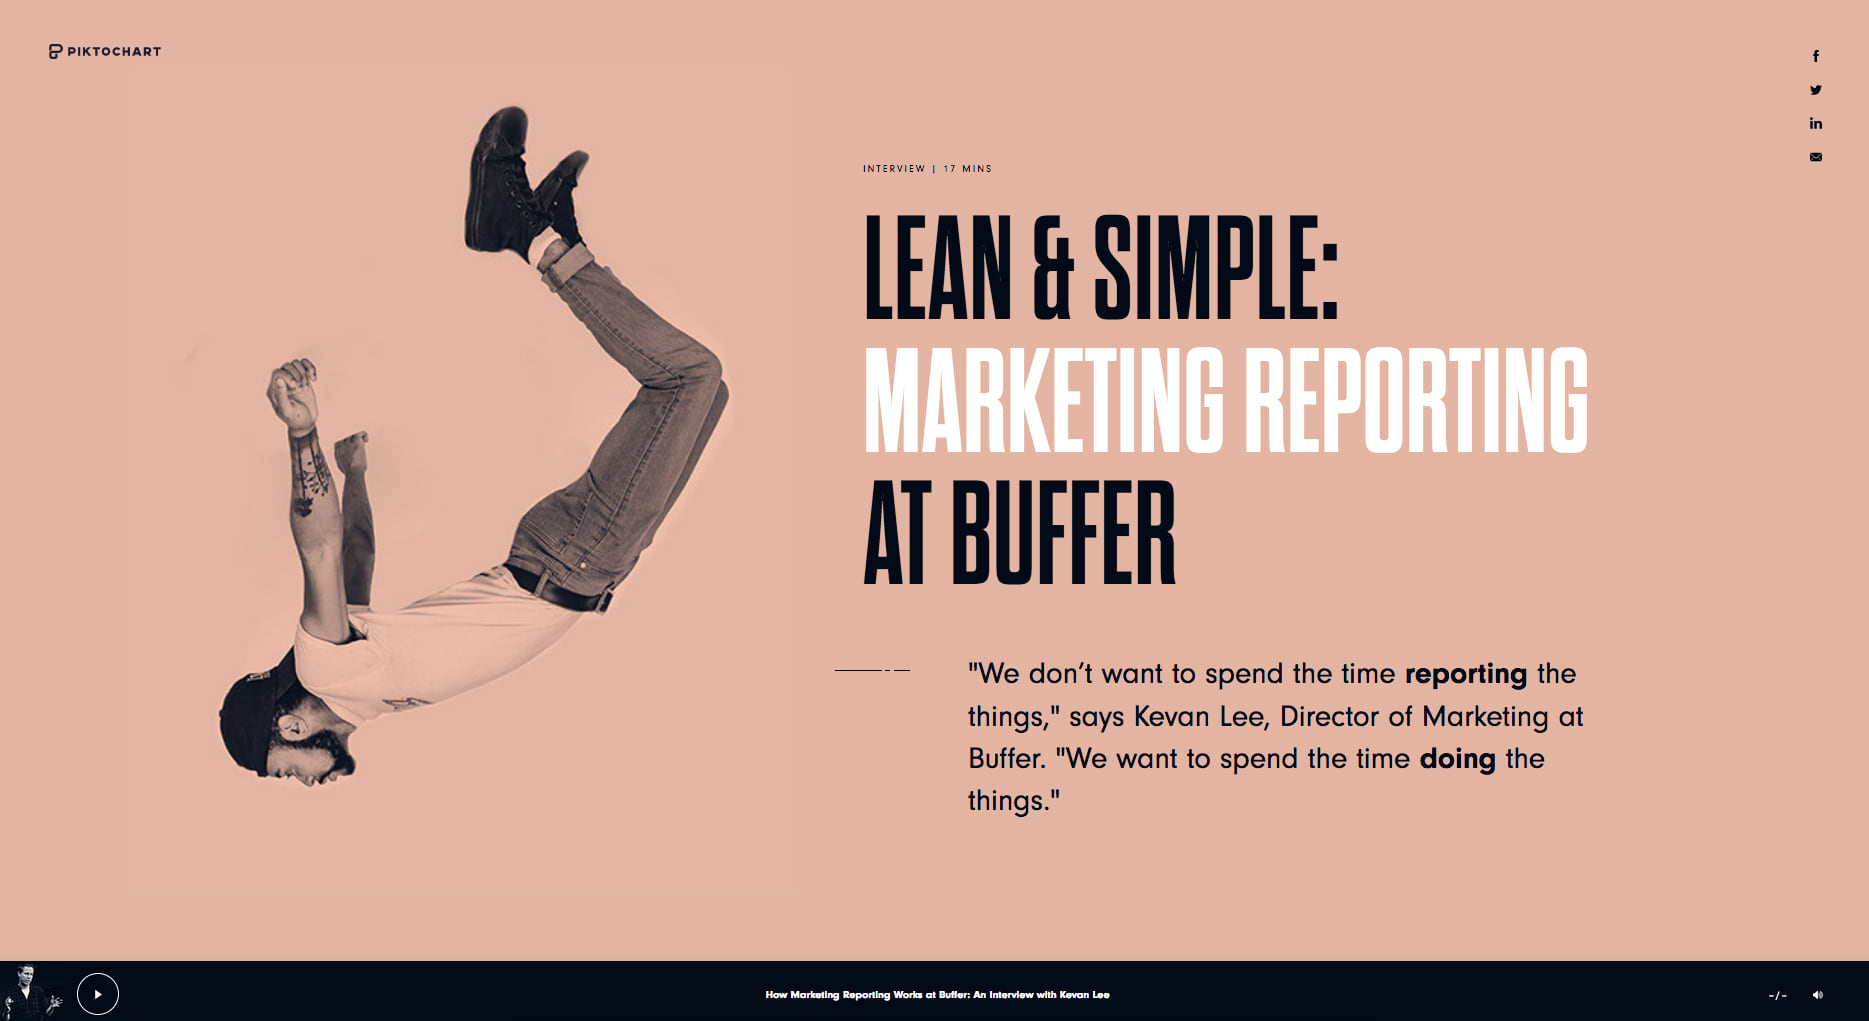 MARKETING REPORTING AT BUFFER